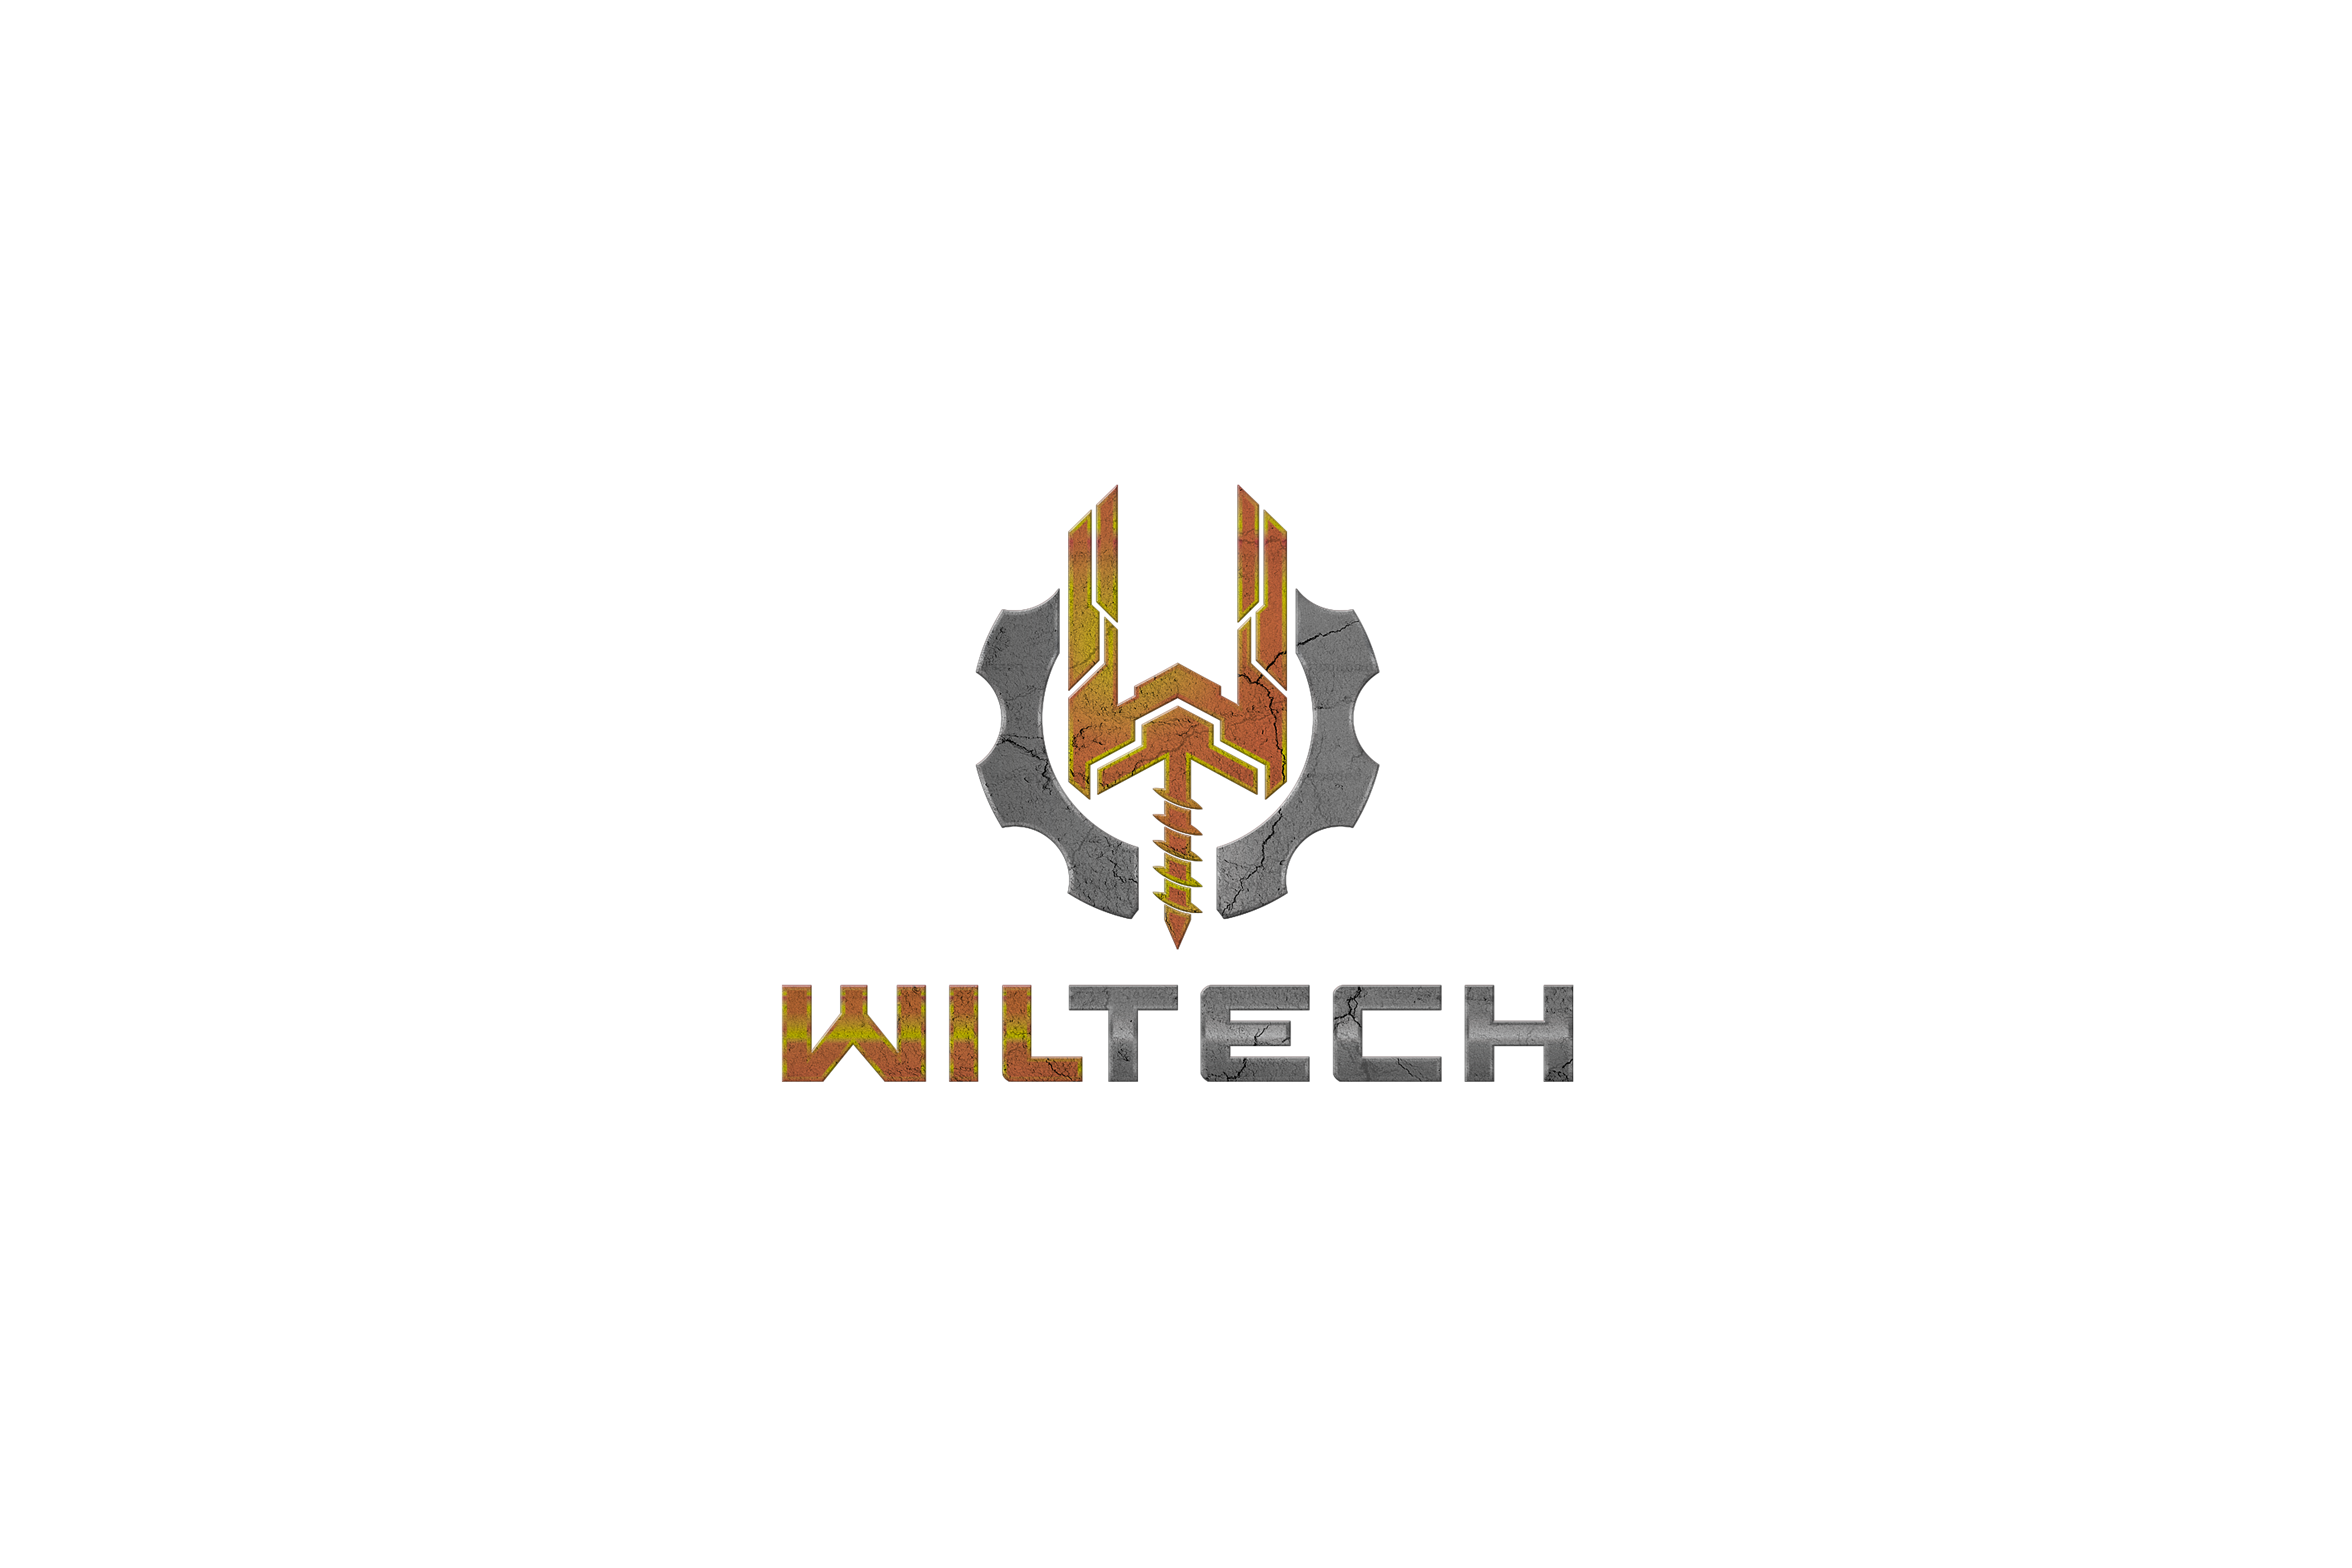 Design a eye catching and memorable logo for the upcoming technical brand Wiltech